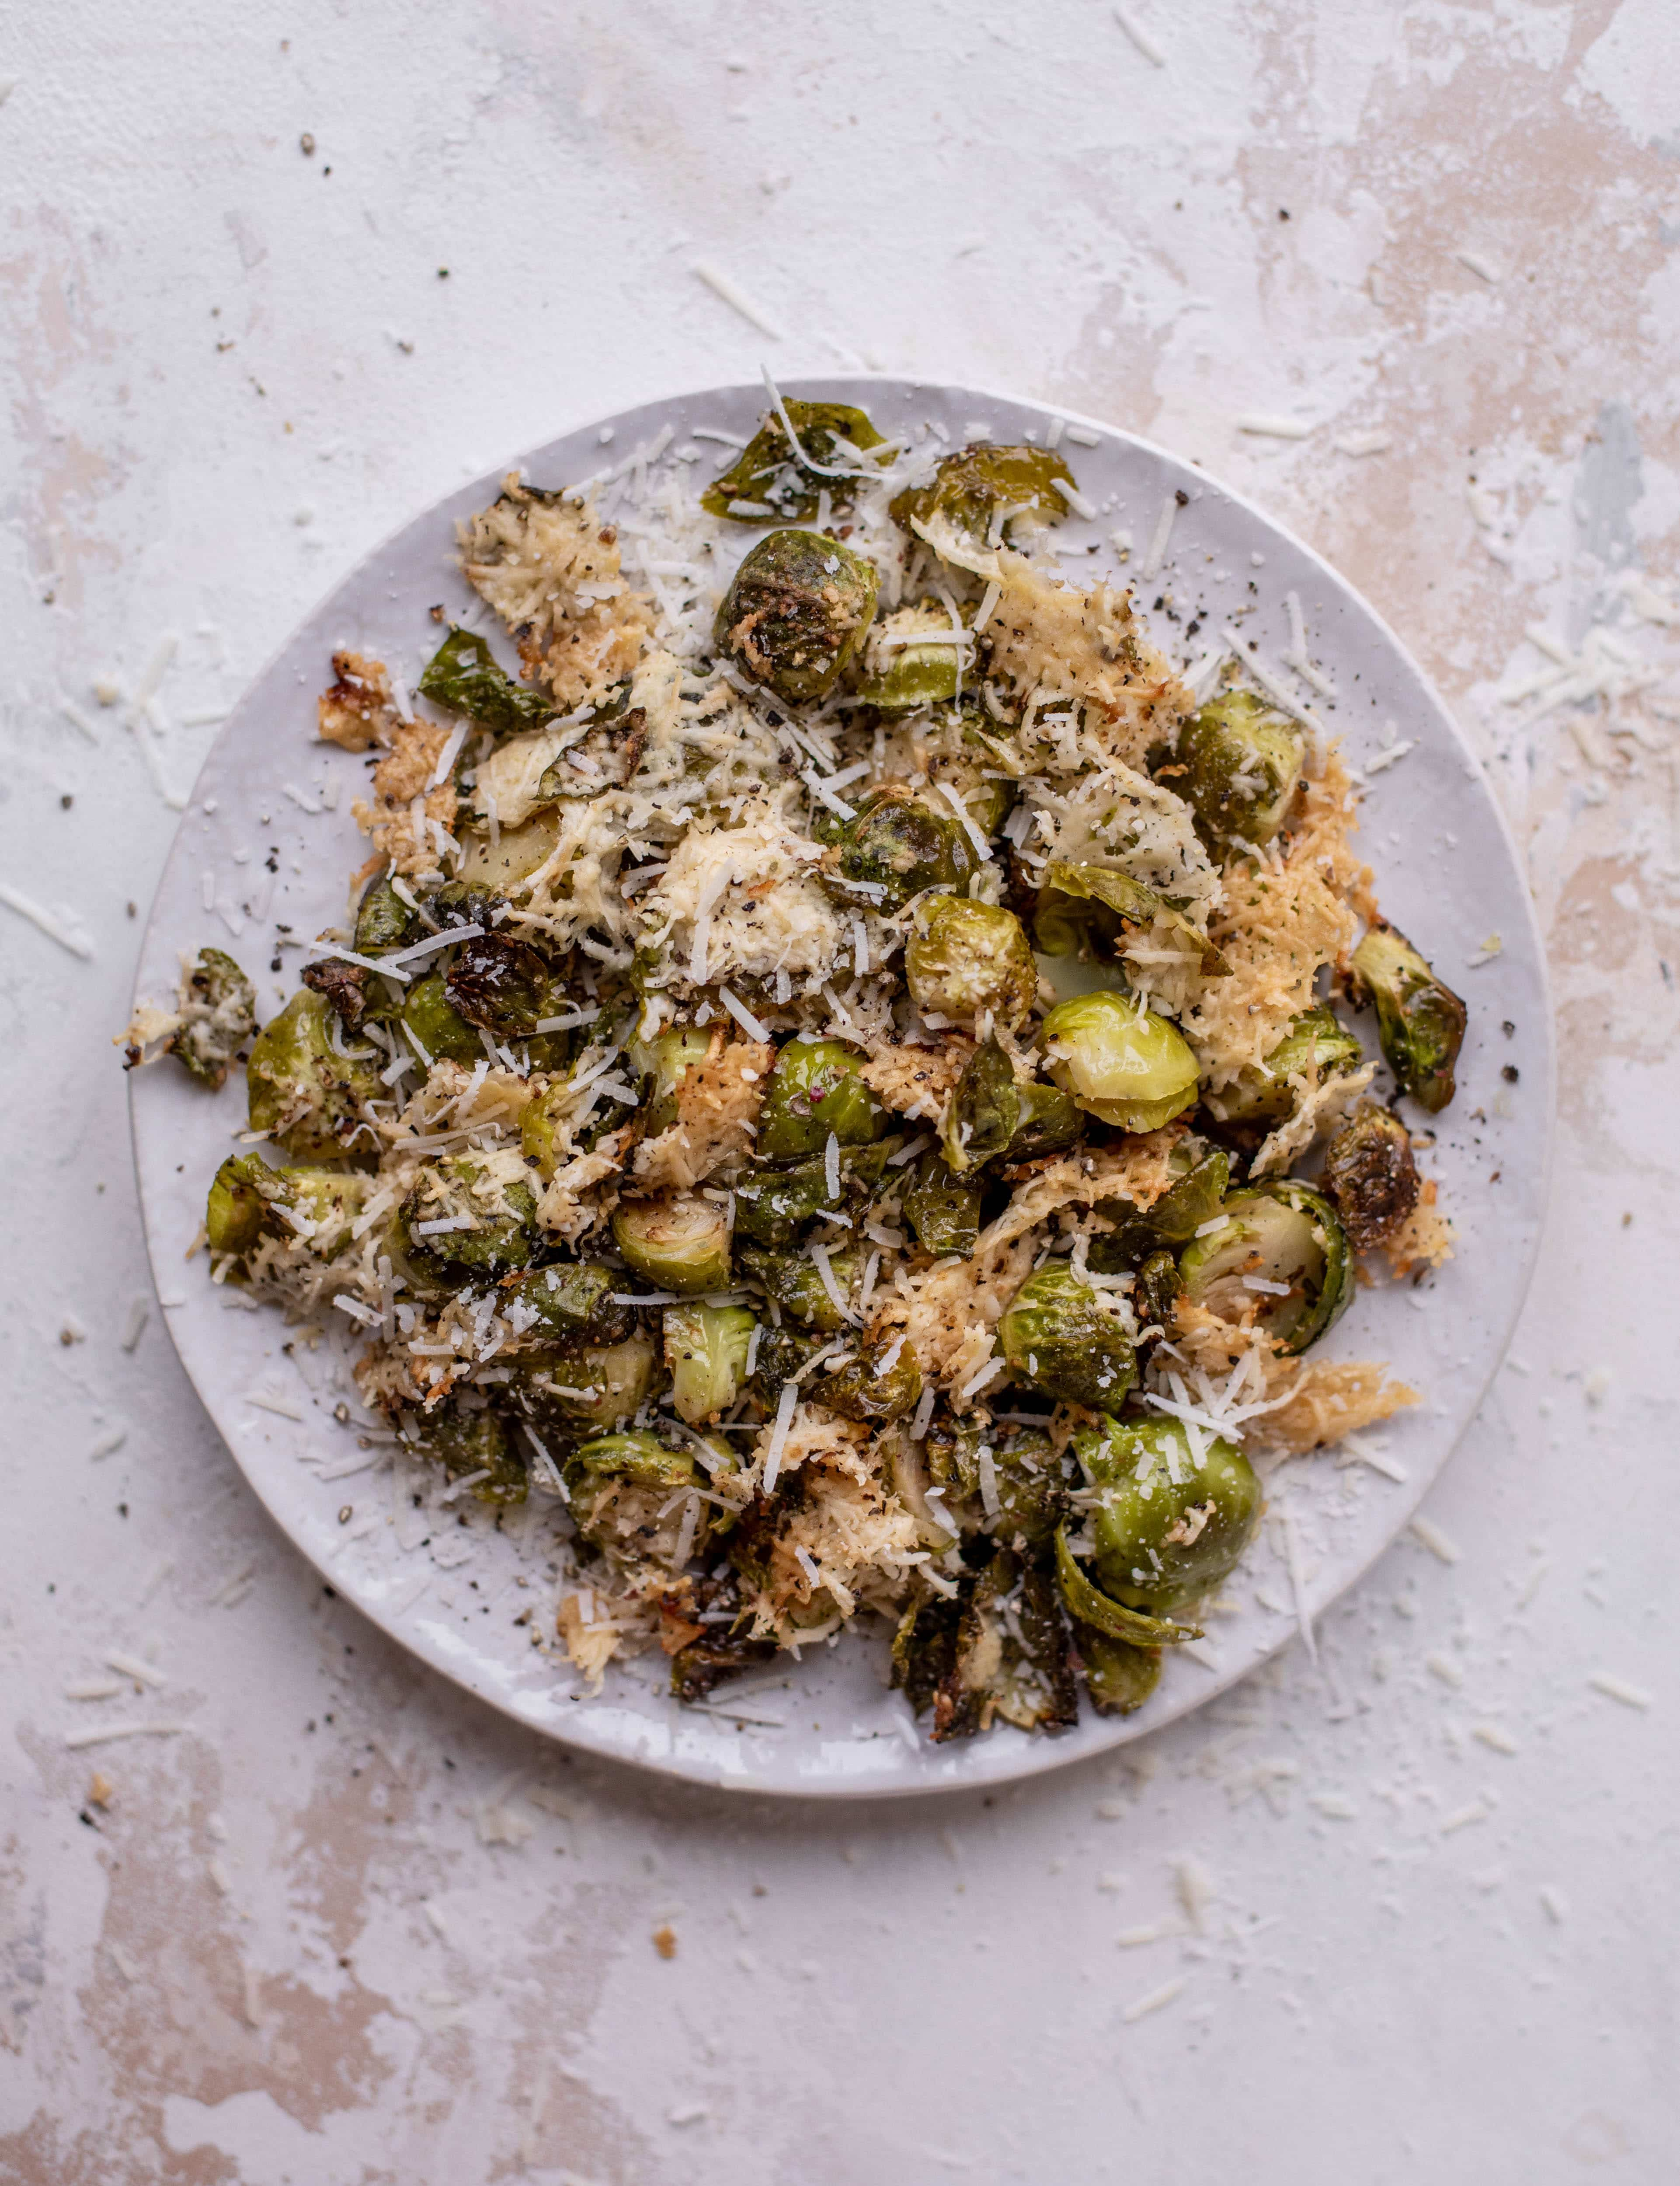 This cacio e pepe brussels are out of the world. Roasted until crisp, topped with tons of black pepper and salty pecorino cheese. Yum.